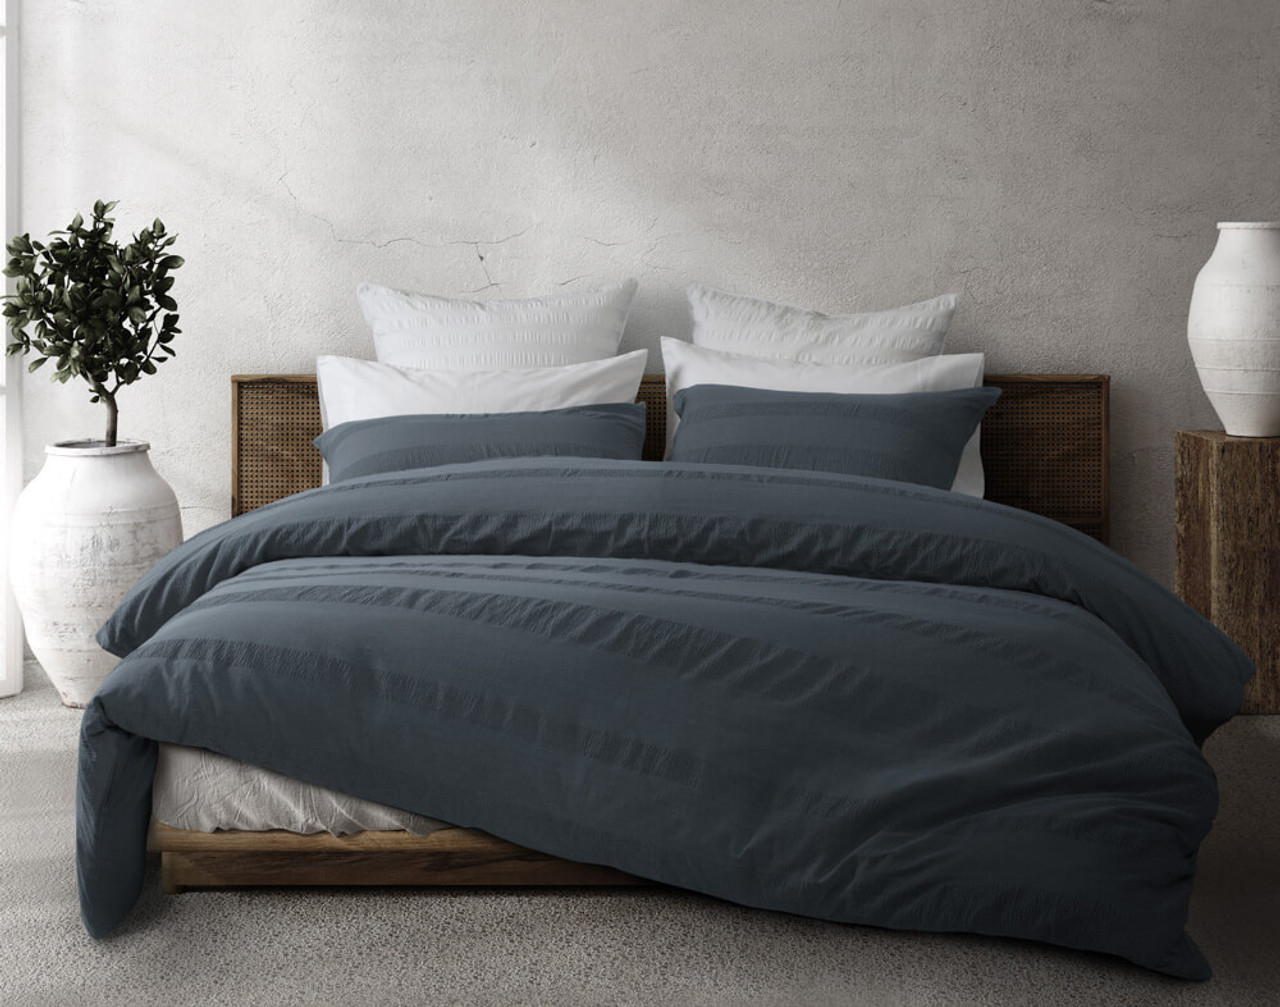 Stonewashed Cotton Duvet Cover Set in a steely blue colour.